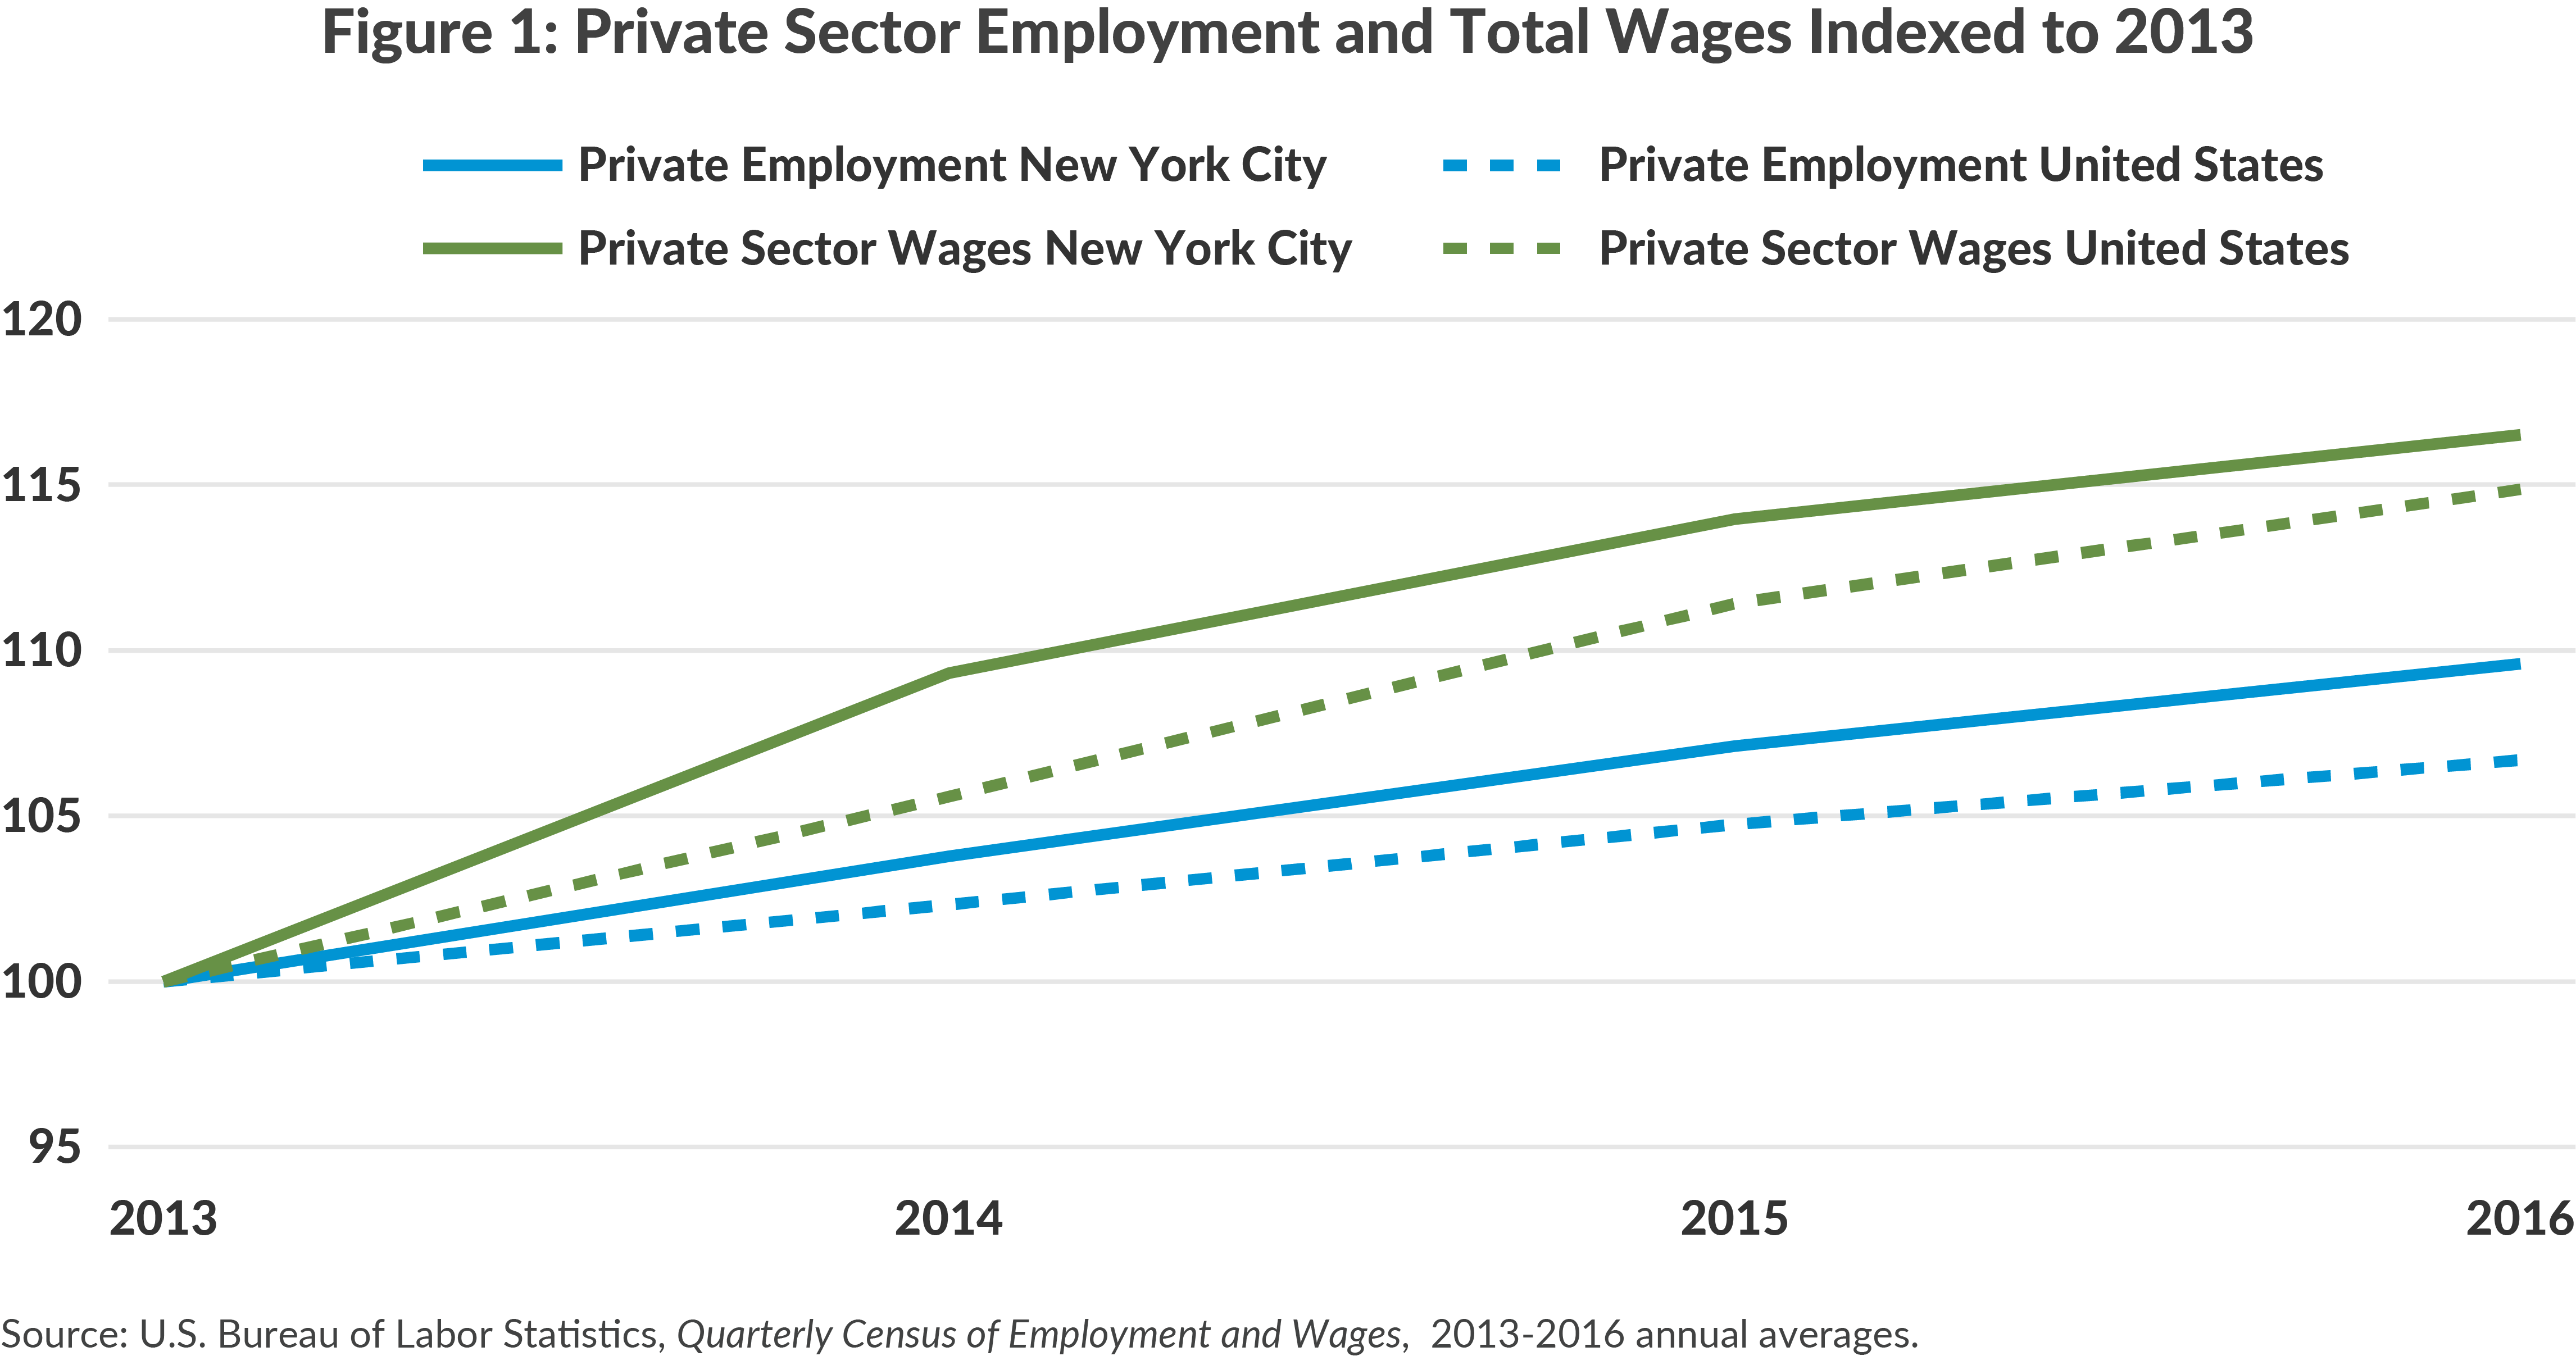 Private Sector Employment and Total Wages Indexed to 2013